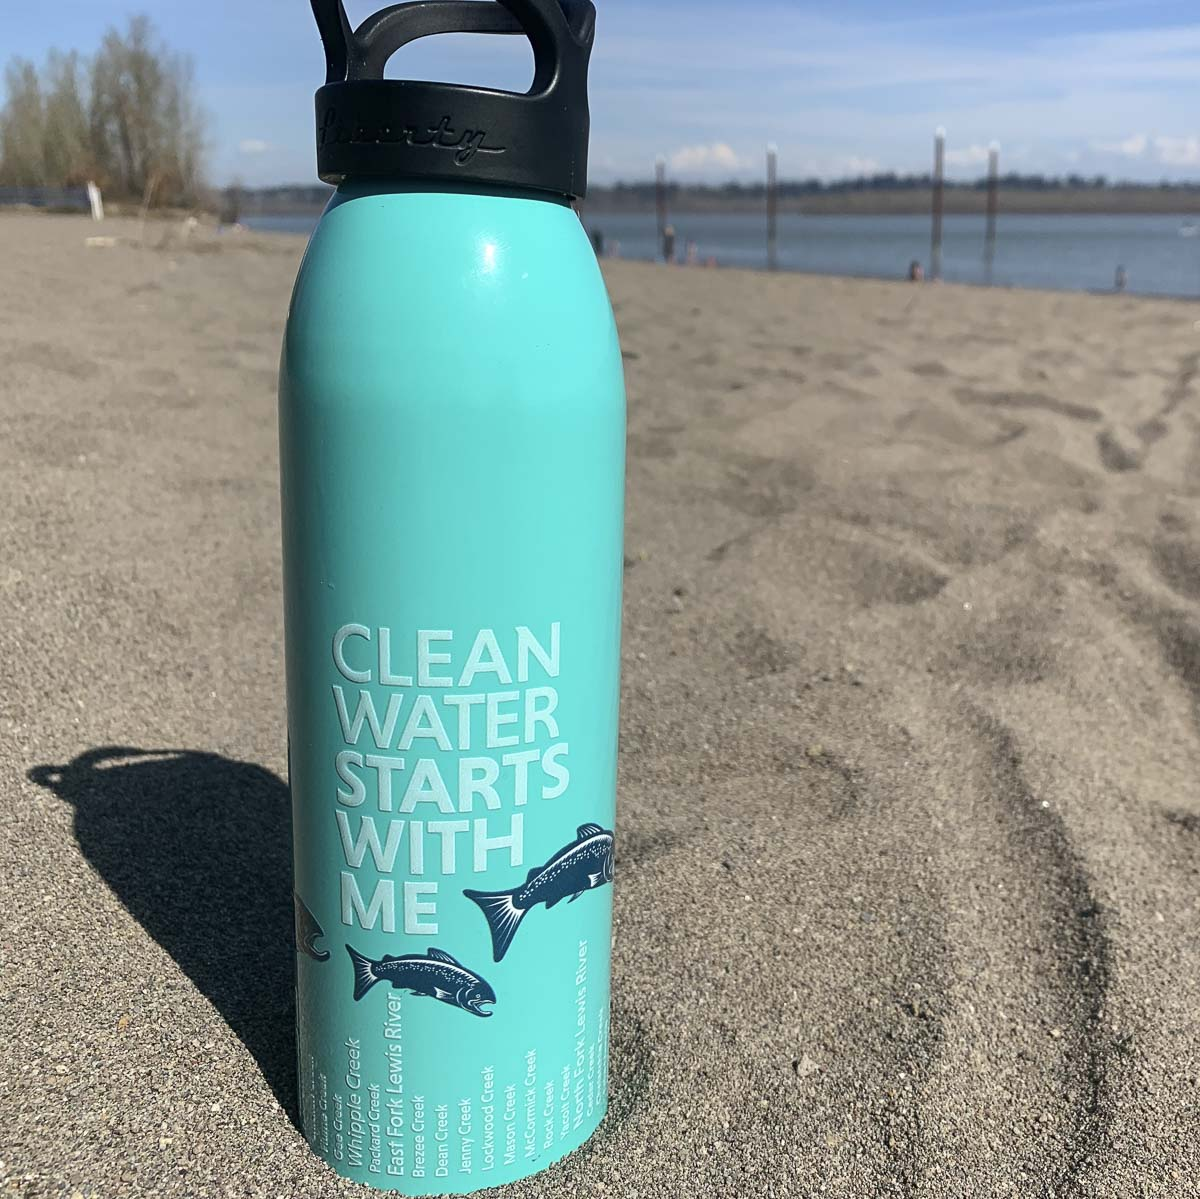 Participants completing each challenge will be entered to win a custom water bottle that highlights county streams and other prizes. Photo courtesy of Clark Co. WA Communications